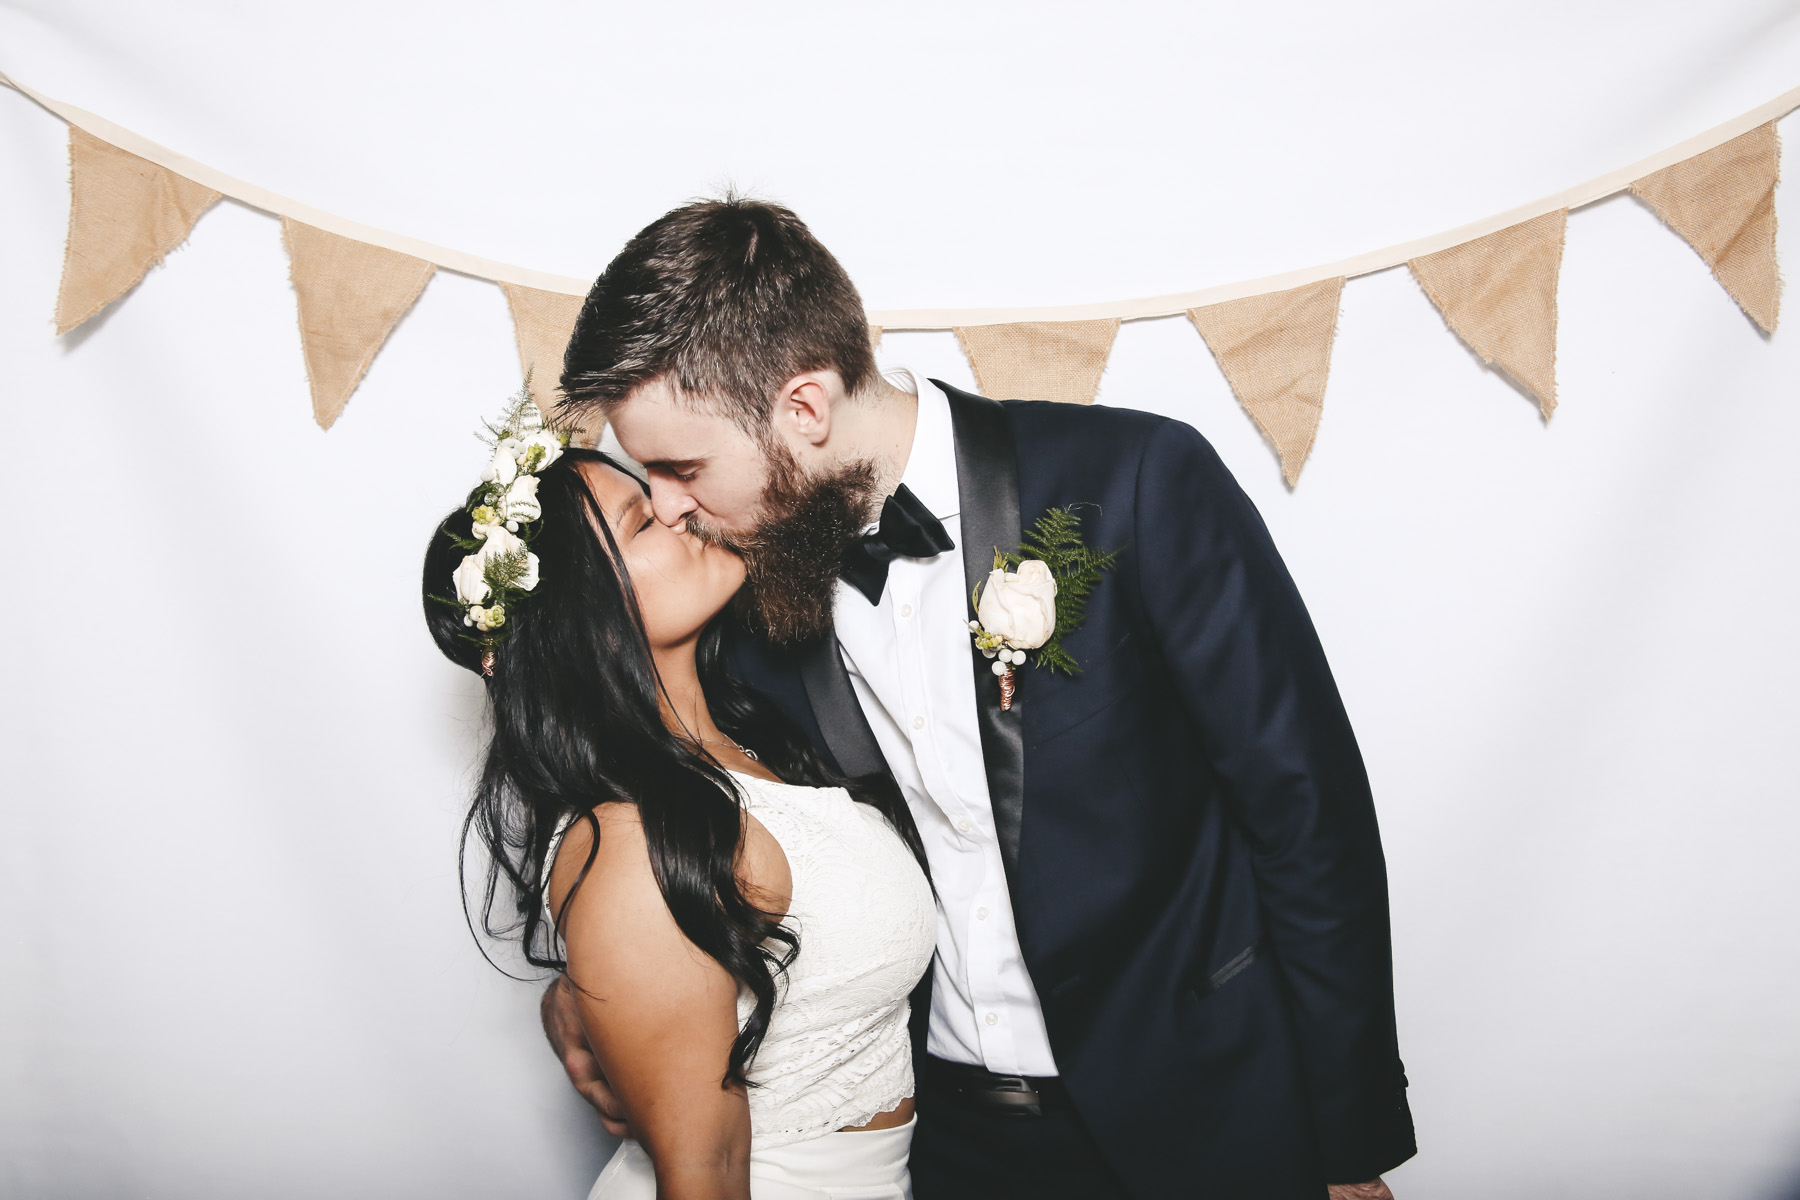 Samuel + natasha's wedding - Password provided on the night- All lowercase -